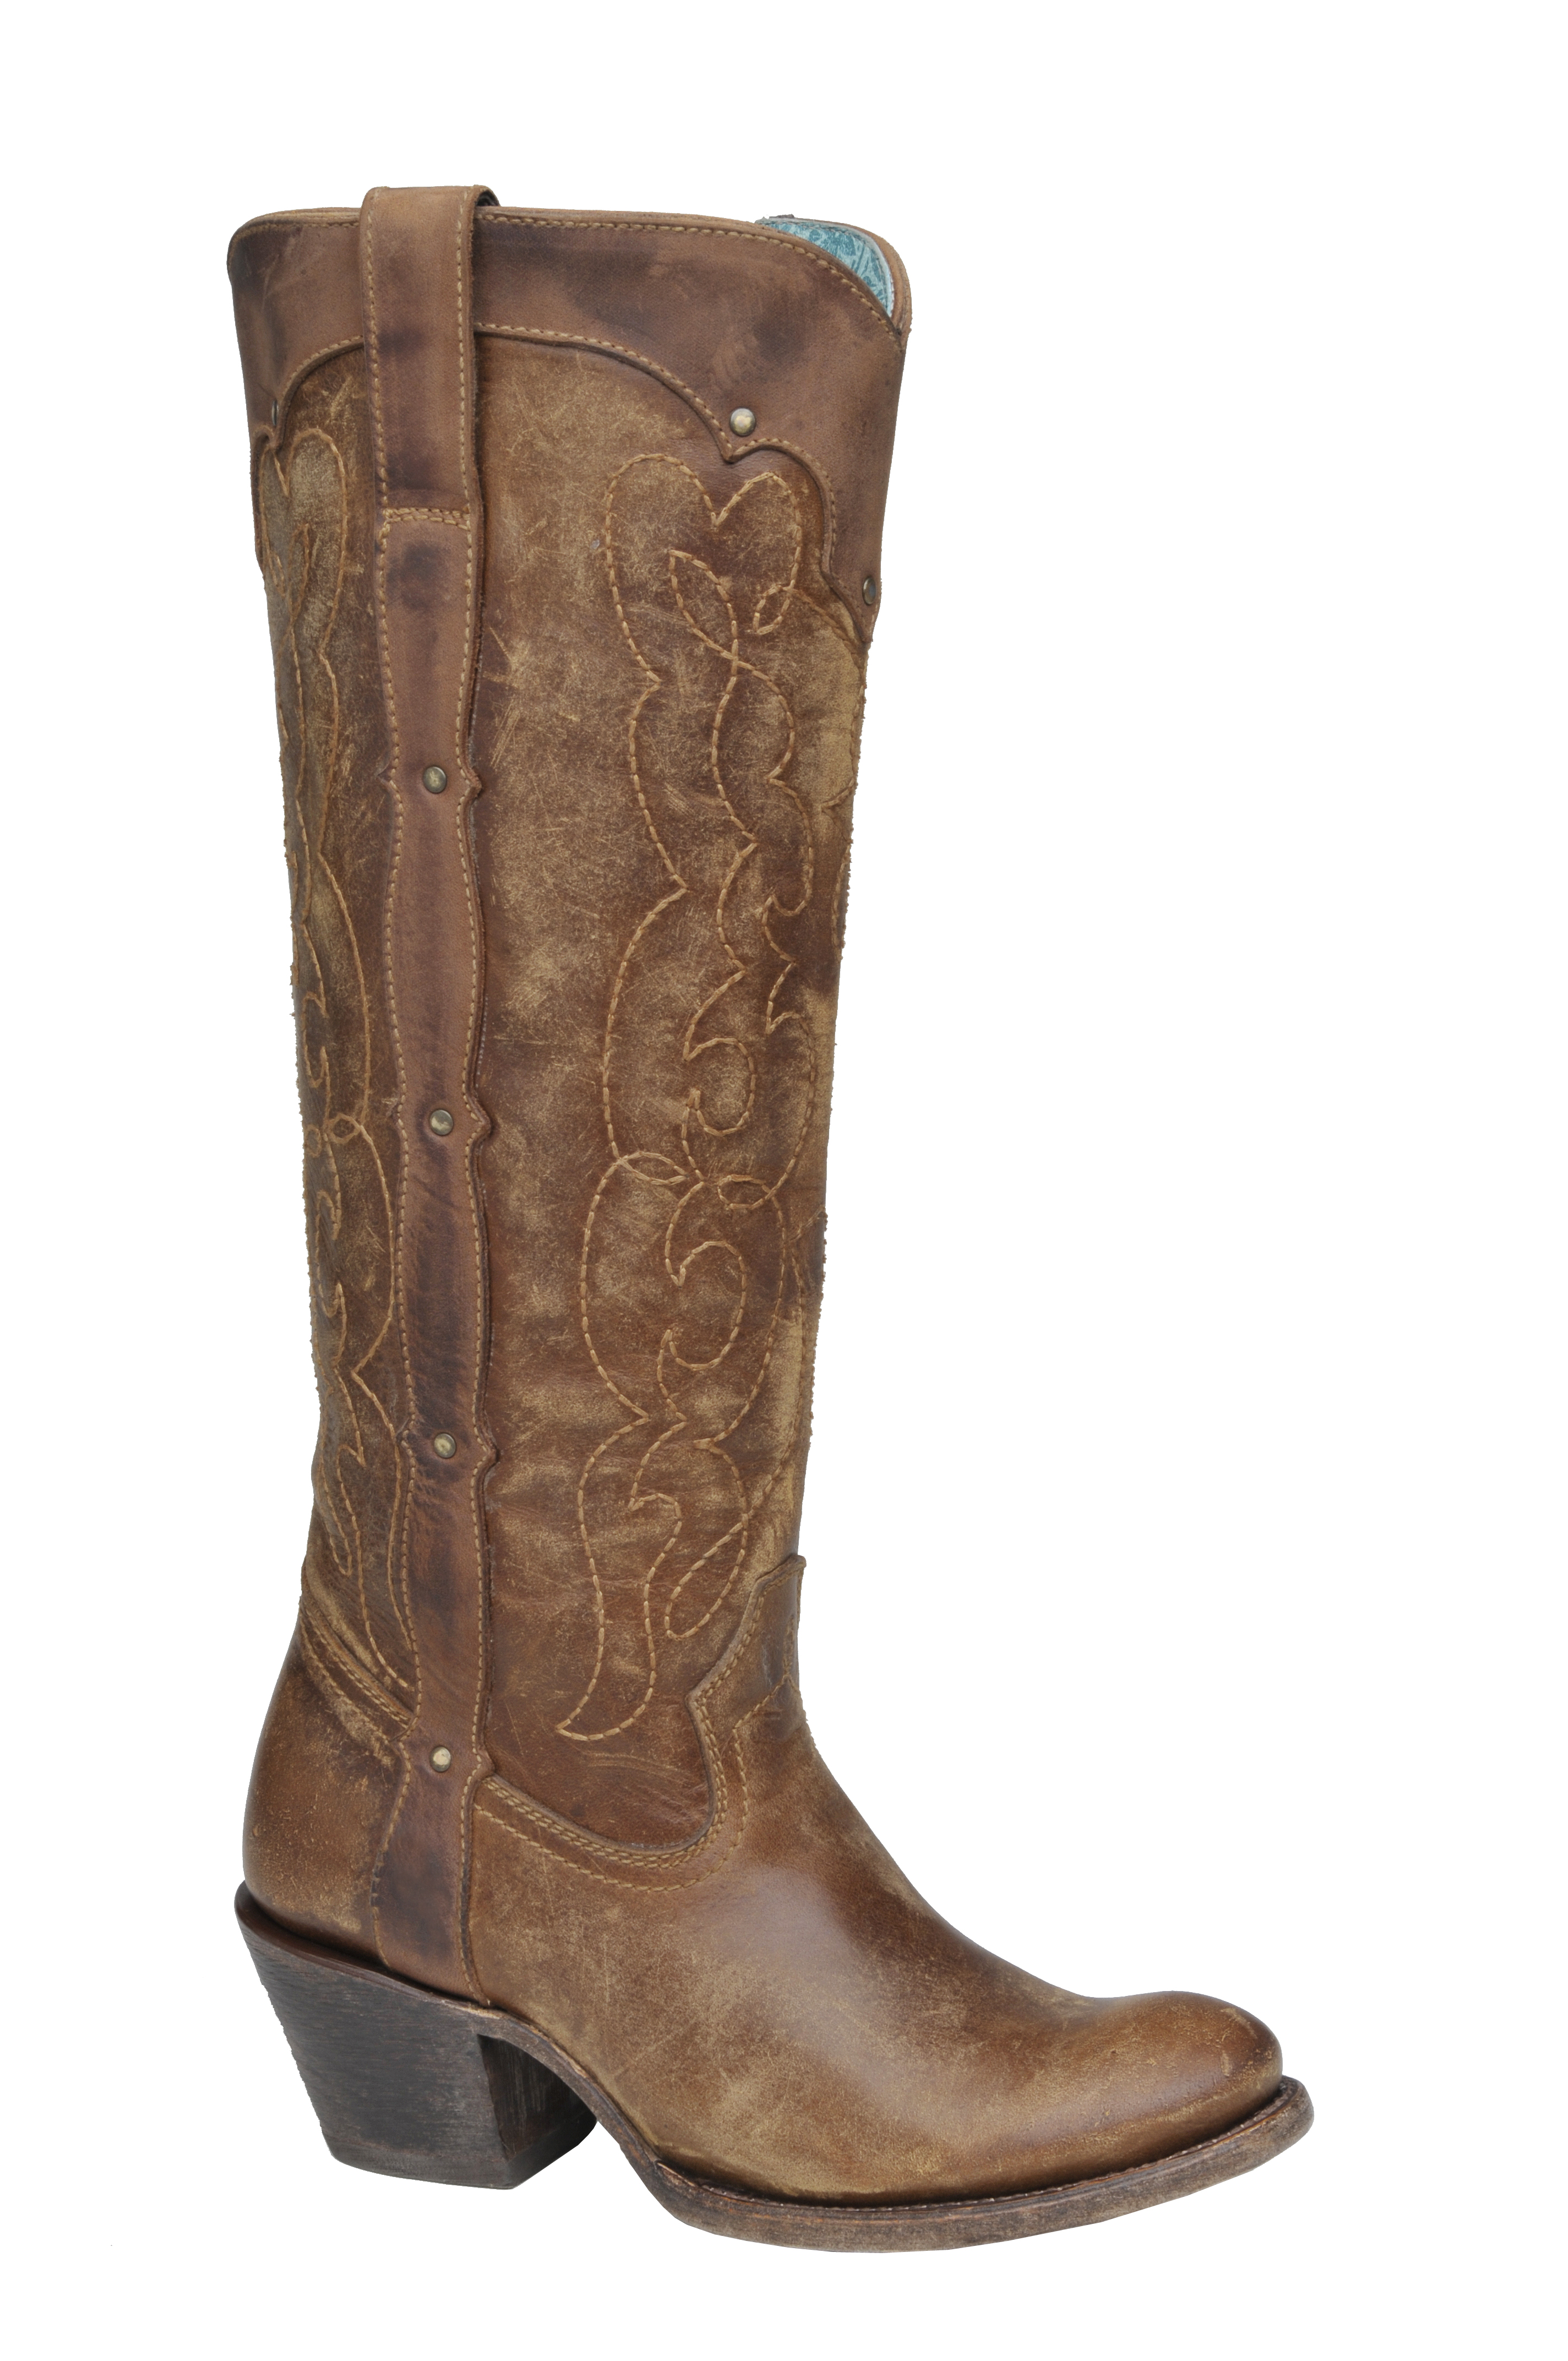 Brilliant Corral Womens Brown-Chocolate Snake Inlay Boots A2404 - Cowboy Shop - Cowboy Shop